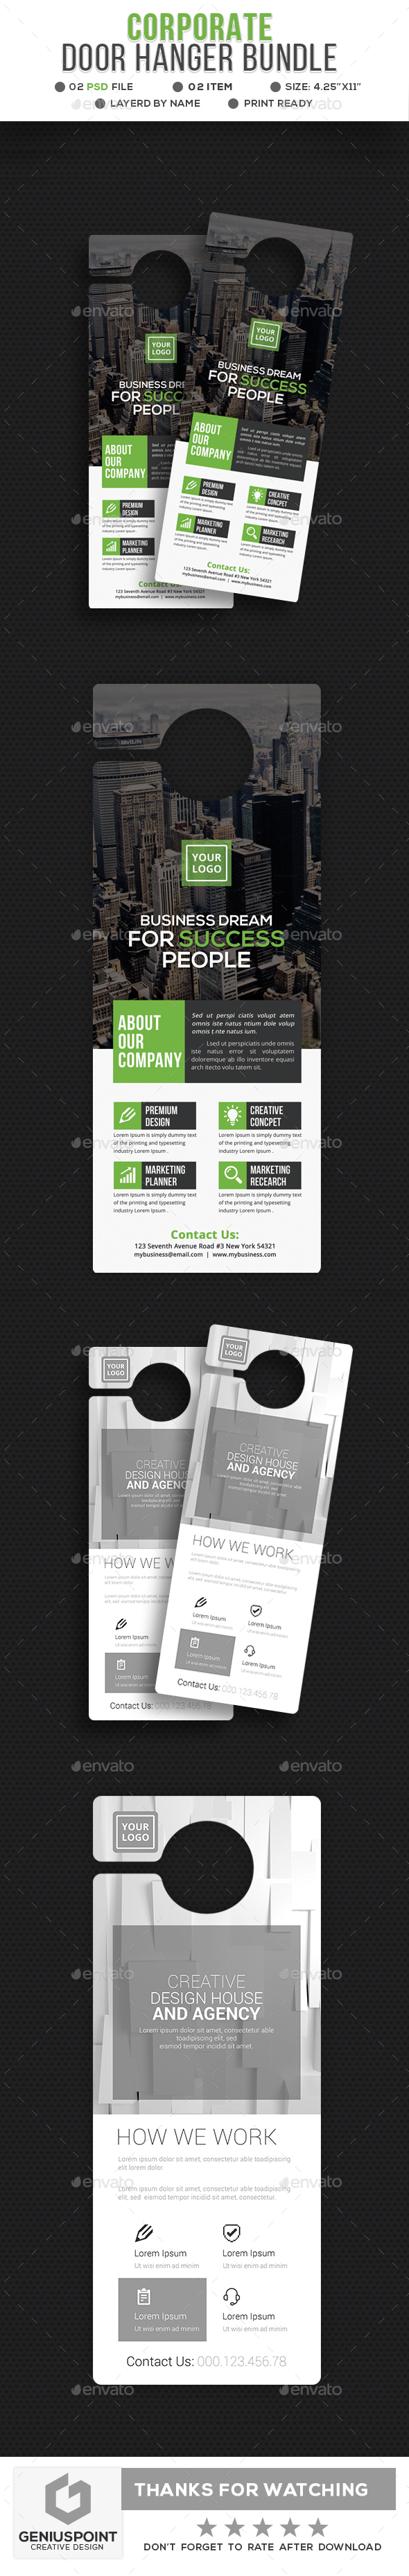 Corporate Door Hanger Bundle - Miscellaneous Print Templates